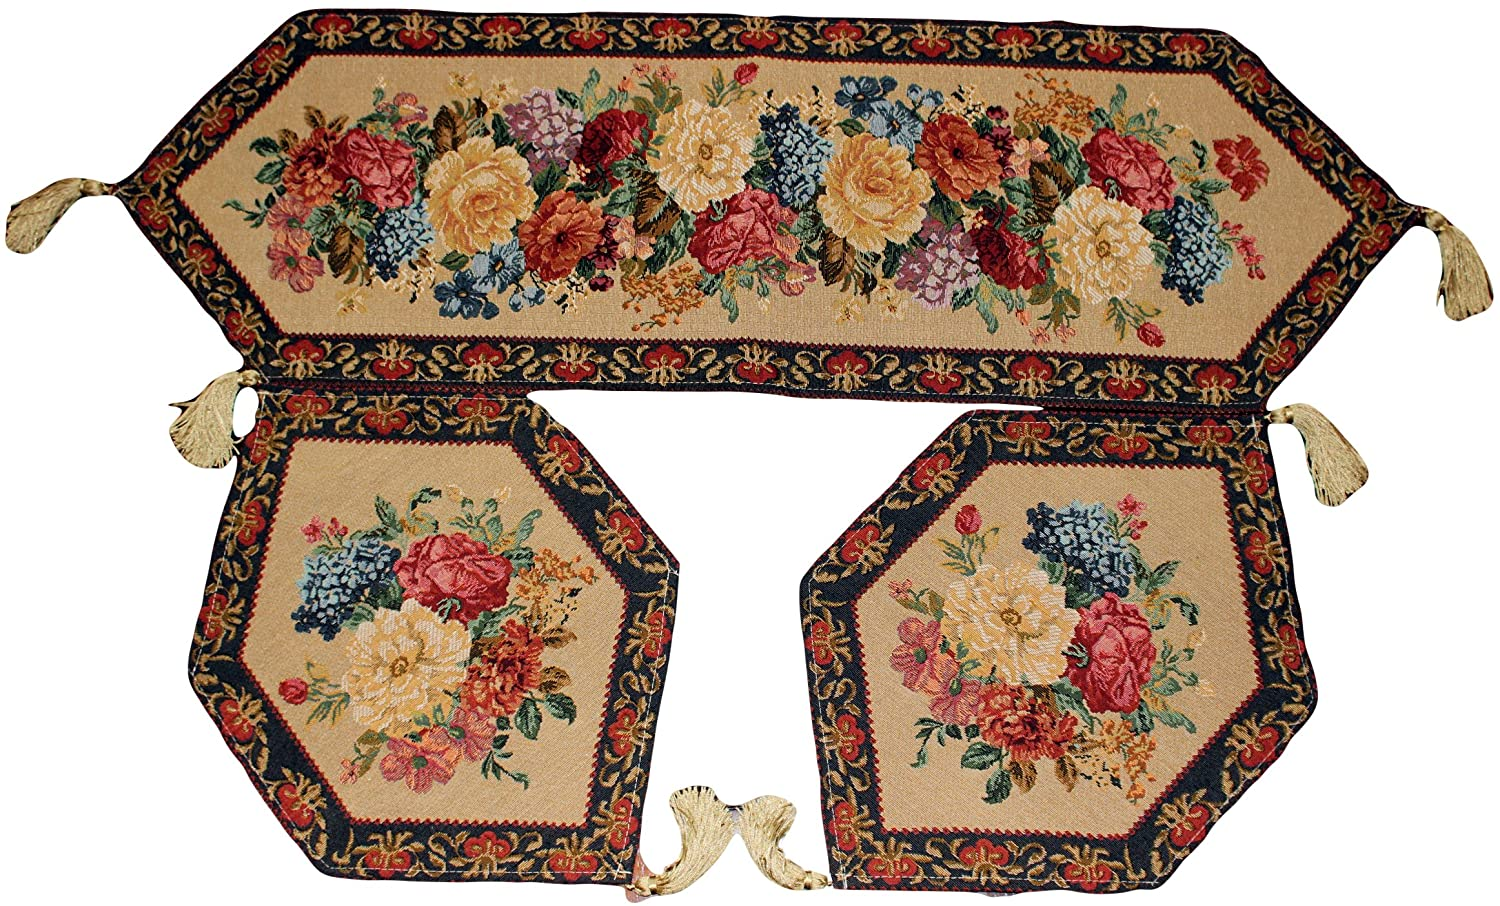 Amazon.com Tache 3 Piece Floral Tapestry Morning Awakenings Woven Table Runner Placemat Set Home u0026 Kitchen  sc 1 st  Amazon.com & Amazon.com: Tache 3 Piece Floral Tapestry Morning Awakenings Woven ...